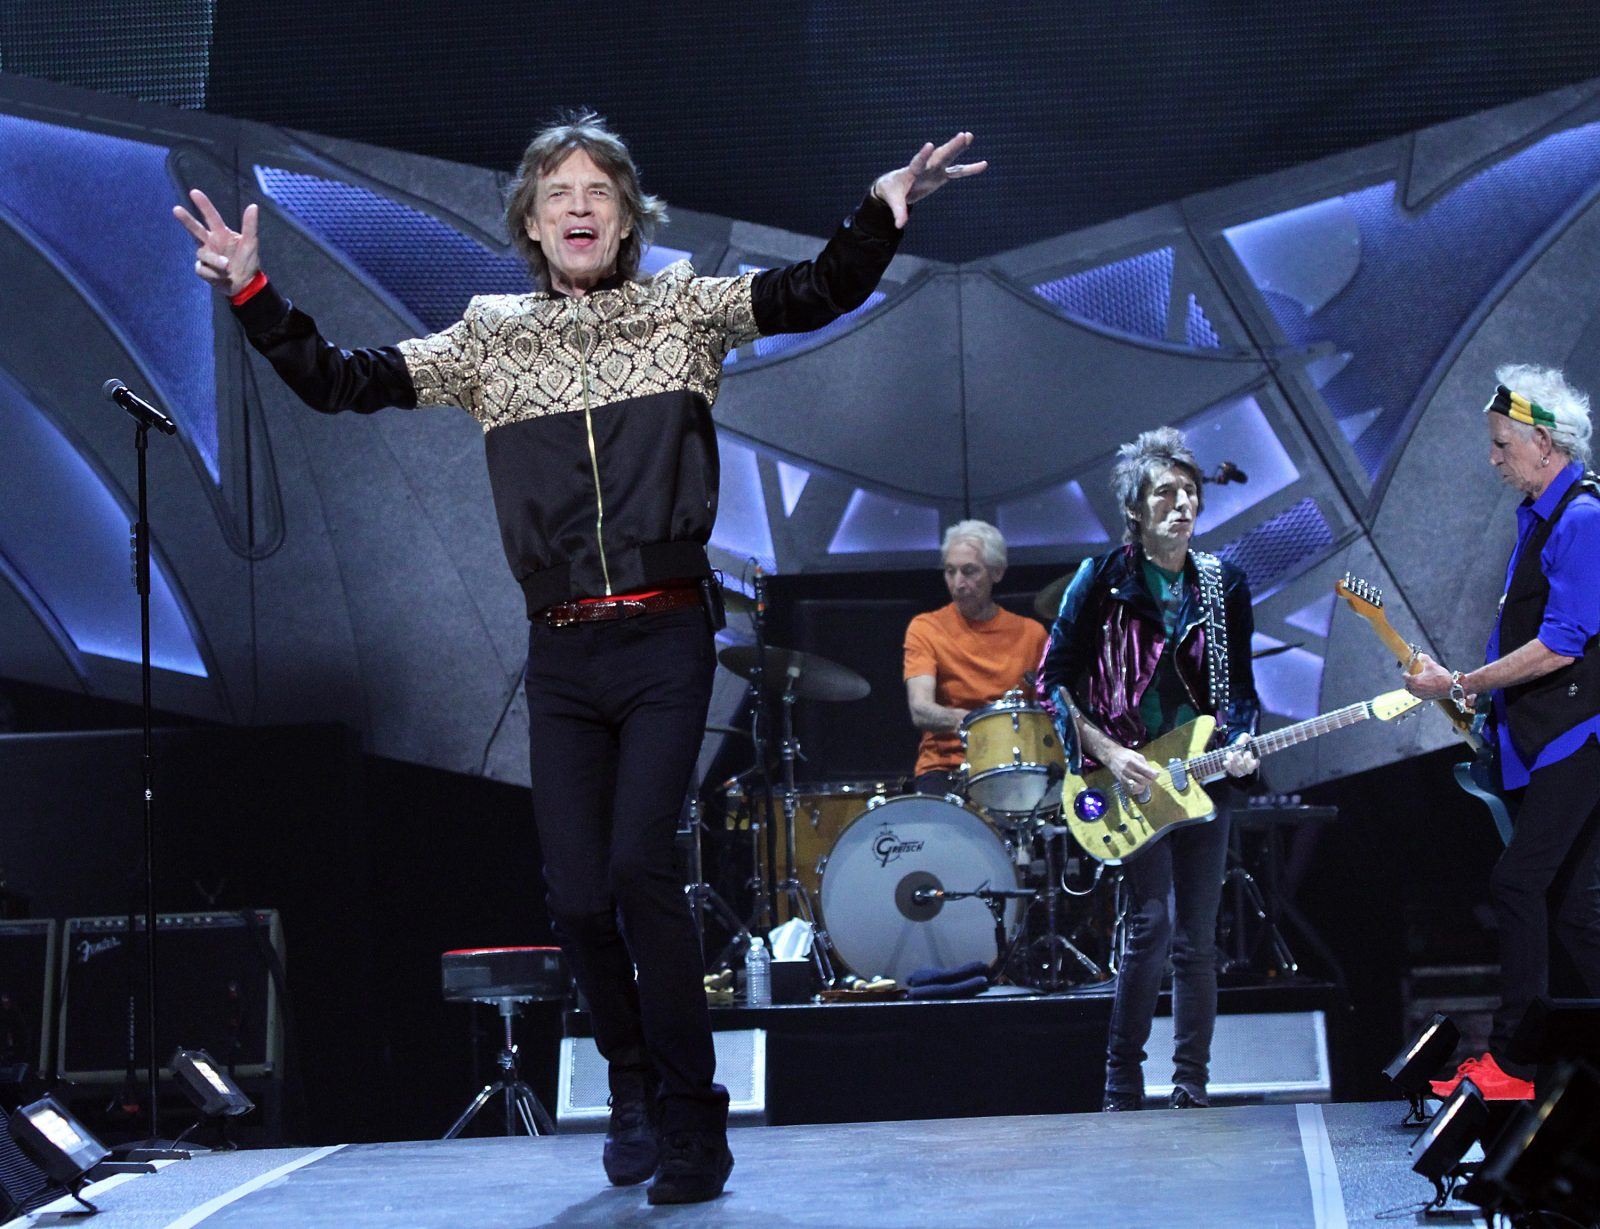 The Rolling Stones  in concert earlier this year in Las  Vegas. (Marcel Thomas/Zuma Press/TNS)